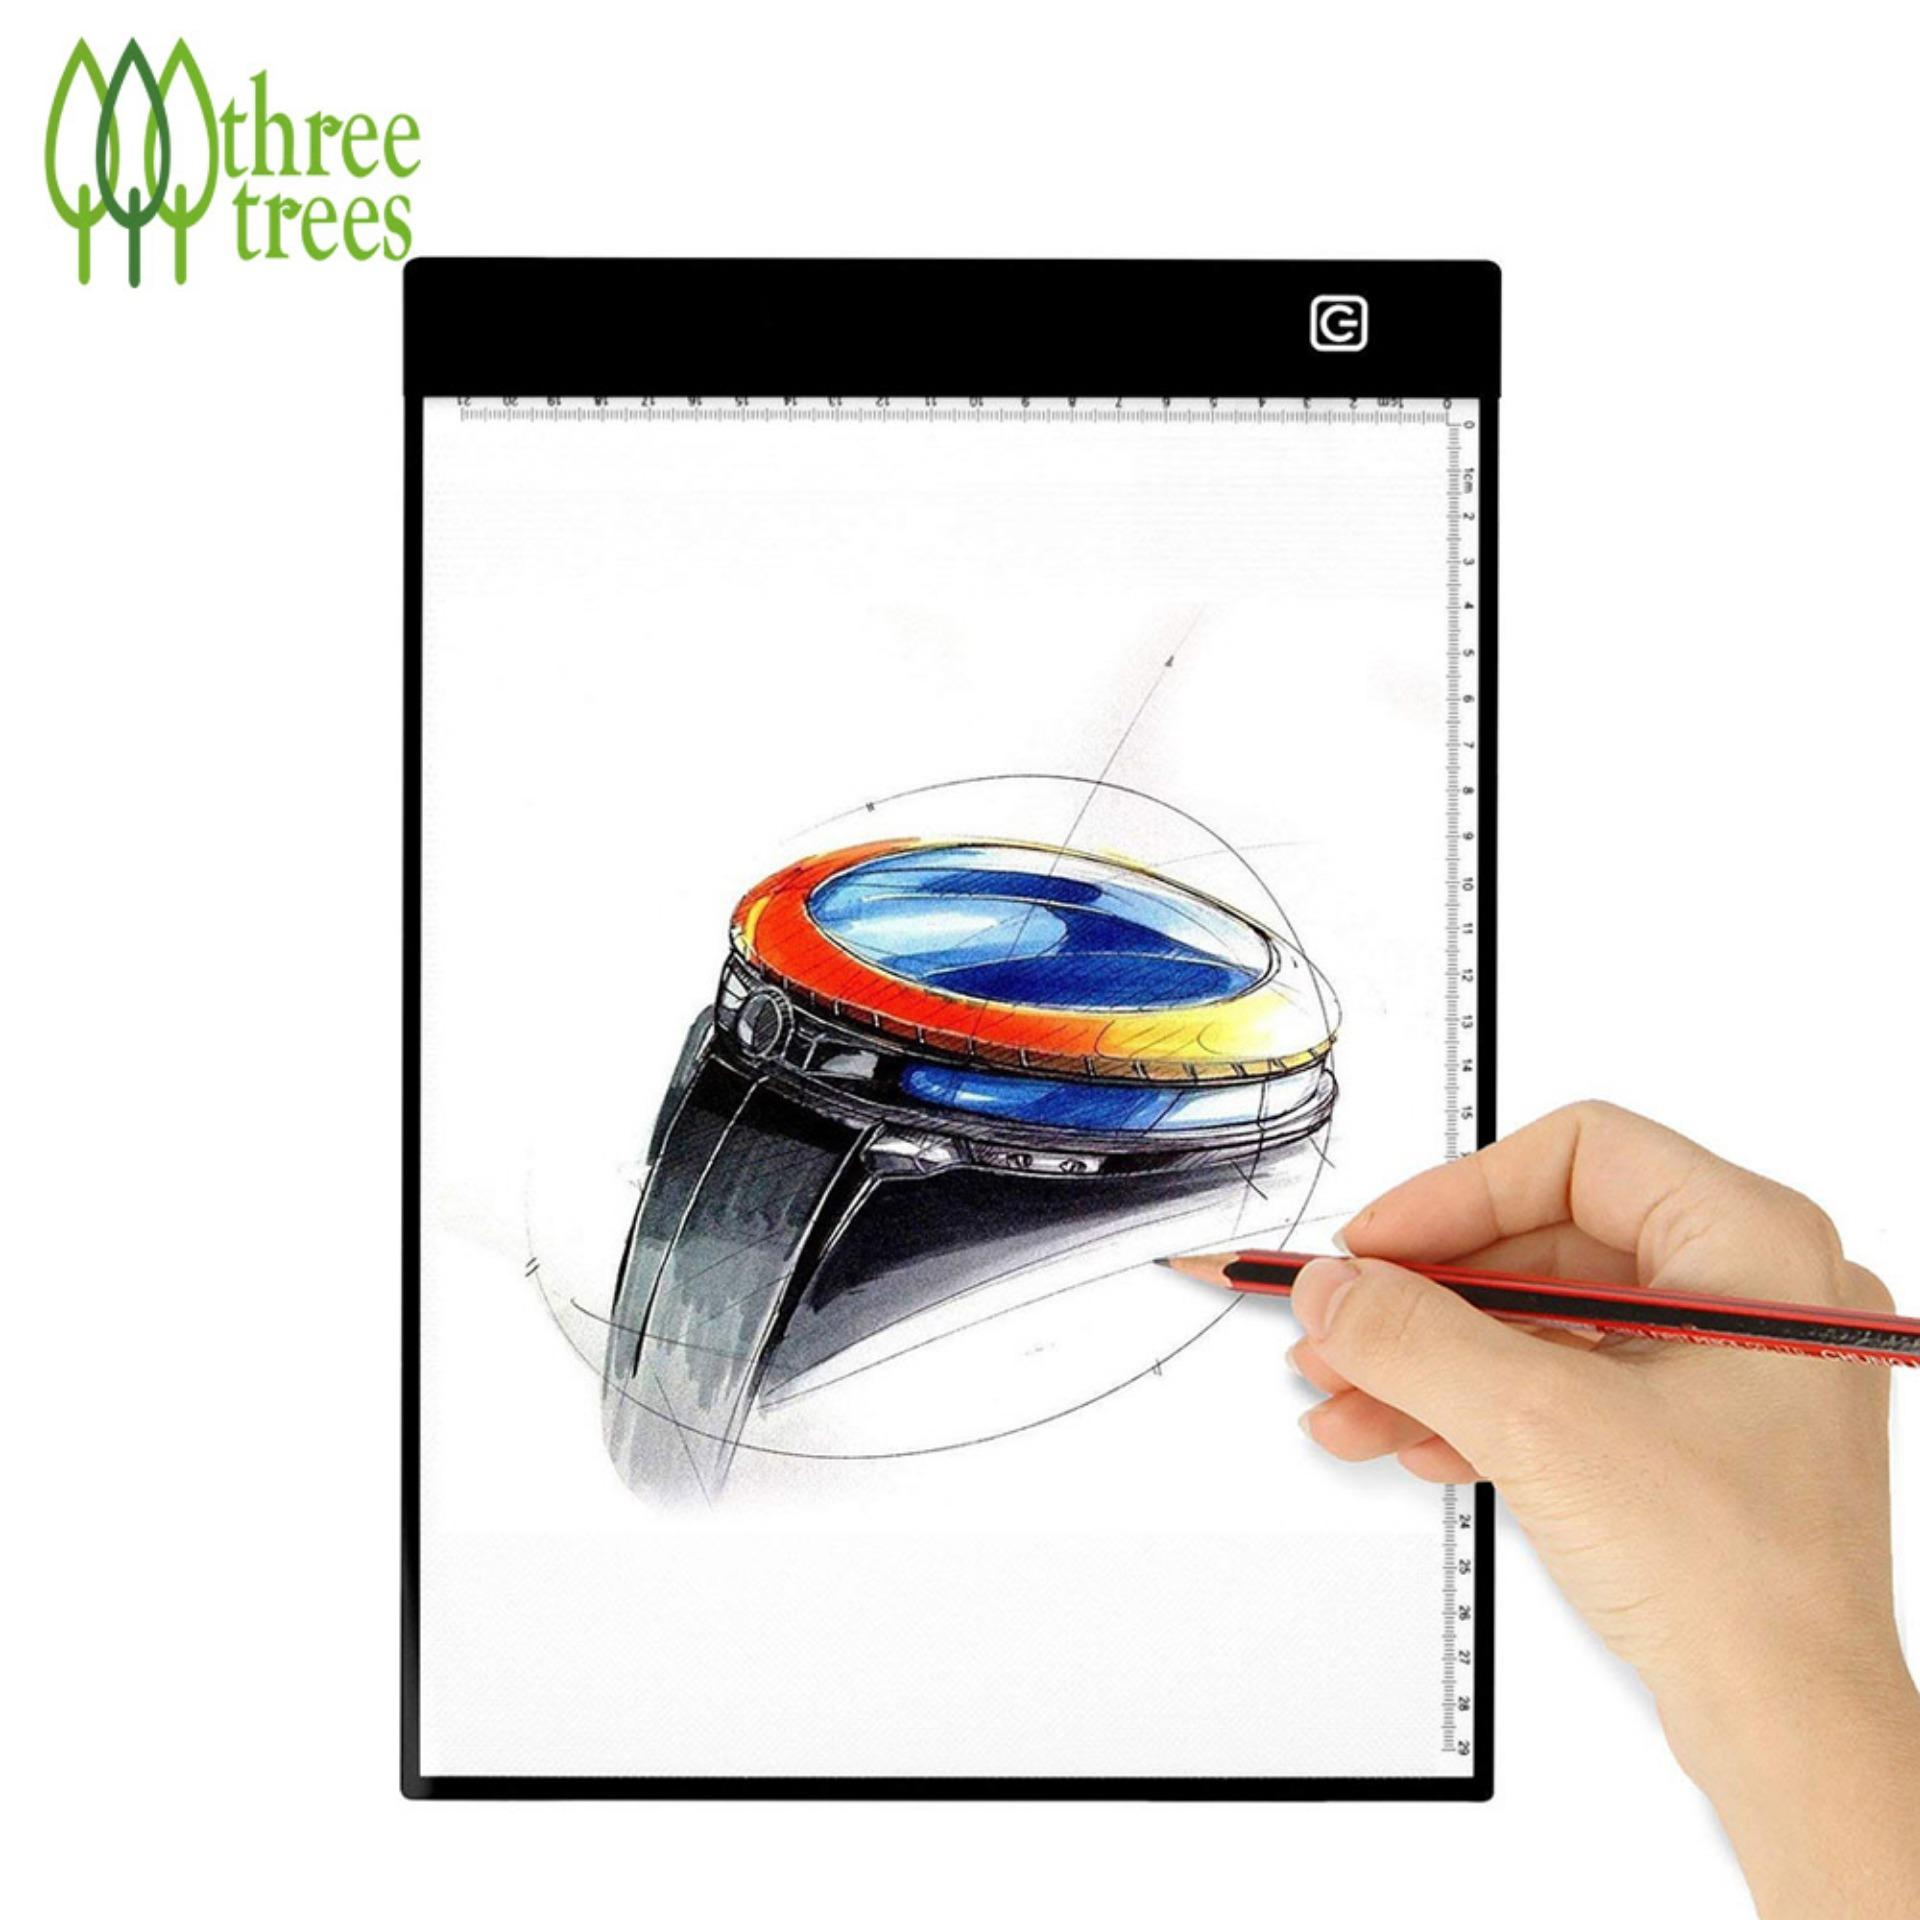 Three tree-A4 LED Tracing Drawing Pad With Dimmable Brightness Light Box For Kids And Artists Animation Drawing or Sketching